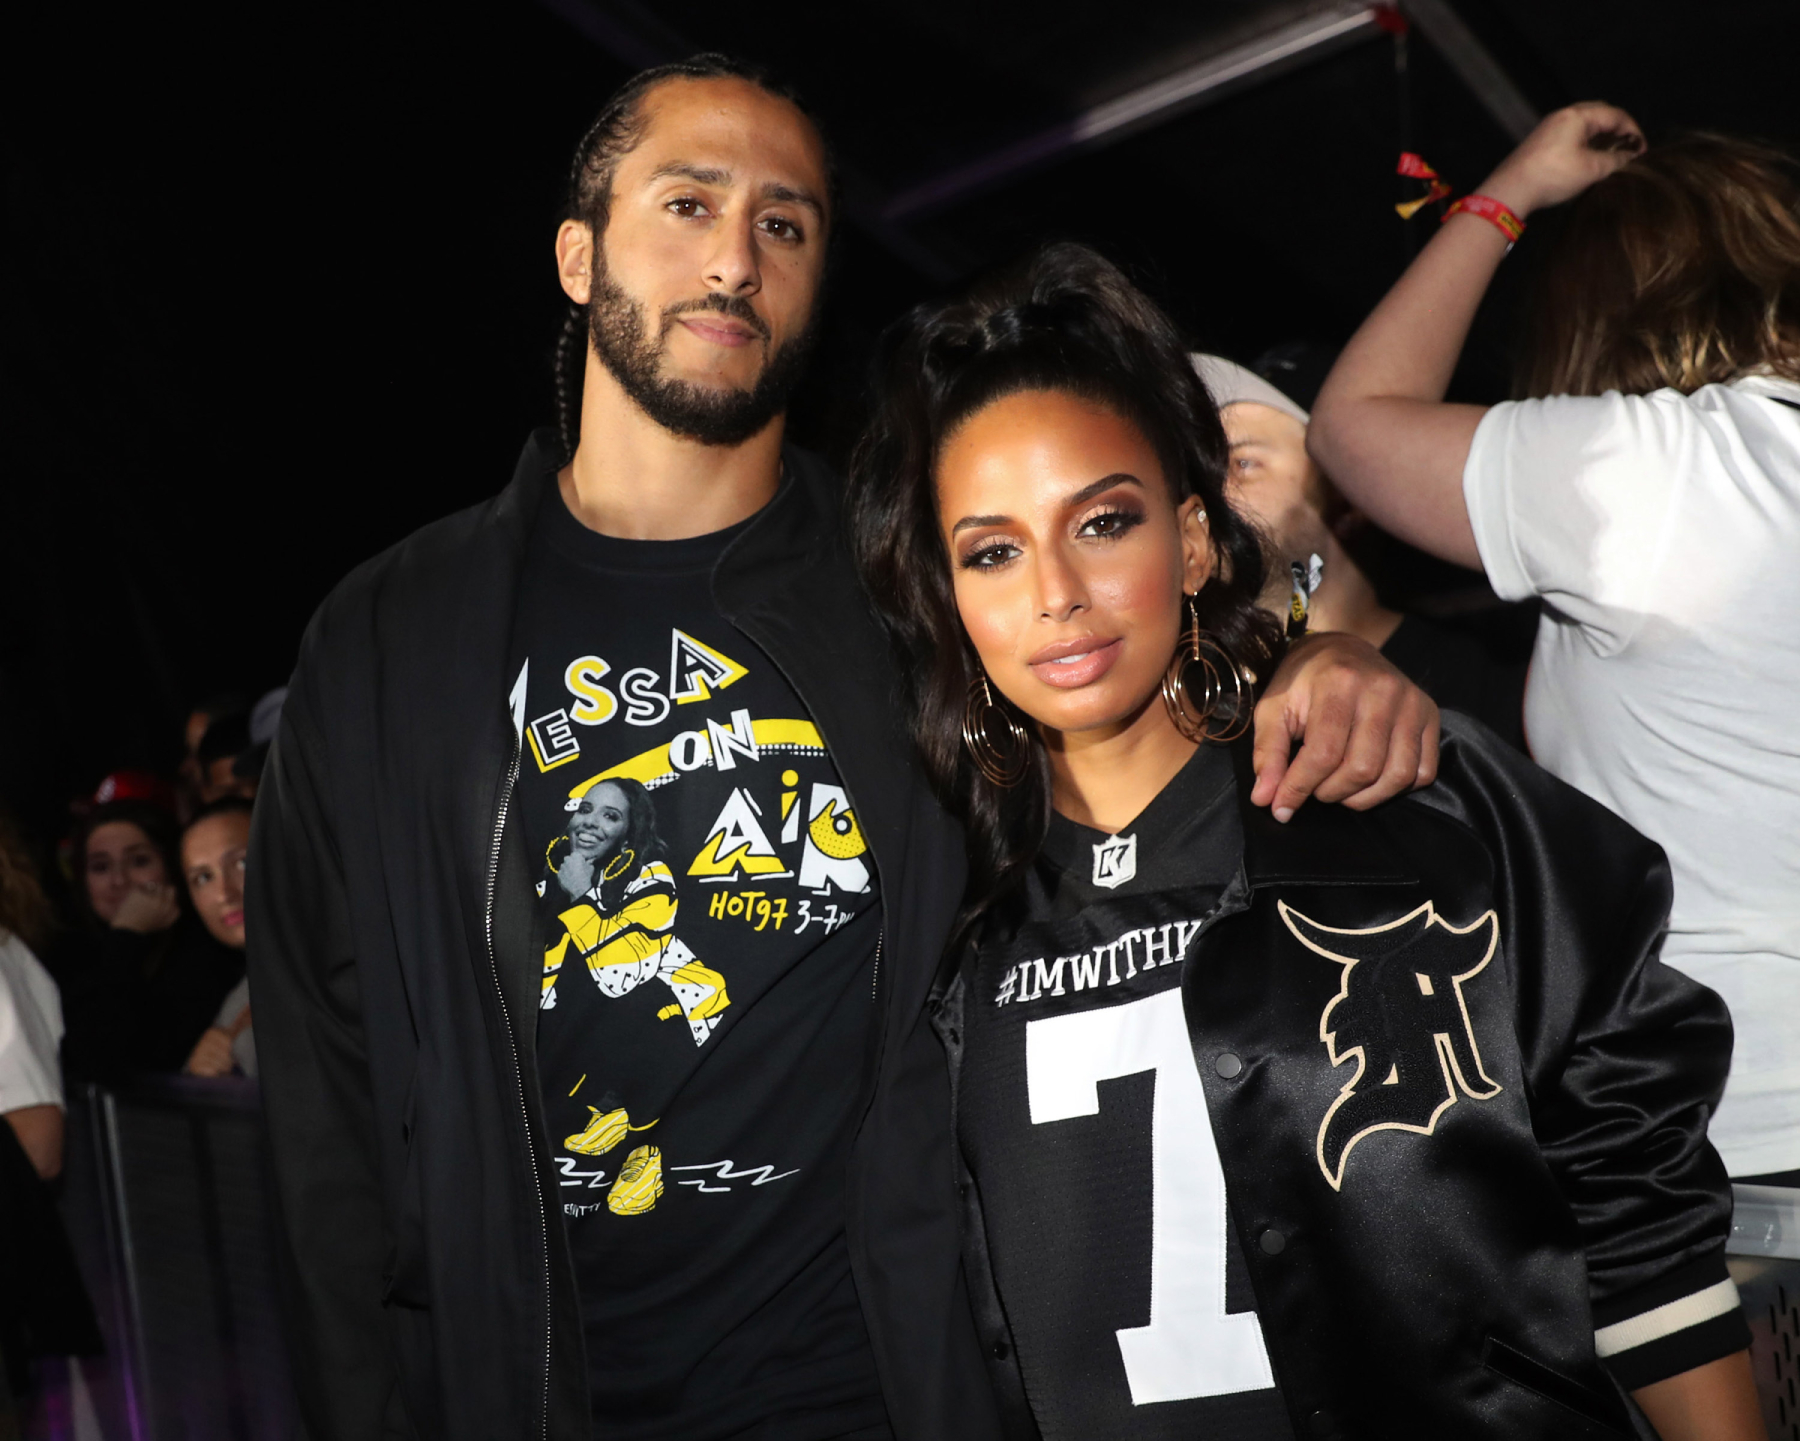 Colin Kaepernick and His Girlfriend Nessa Send the NFL a Strong Message